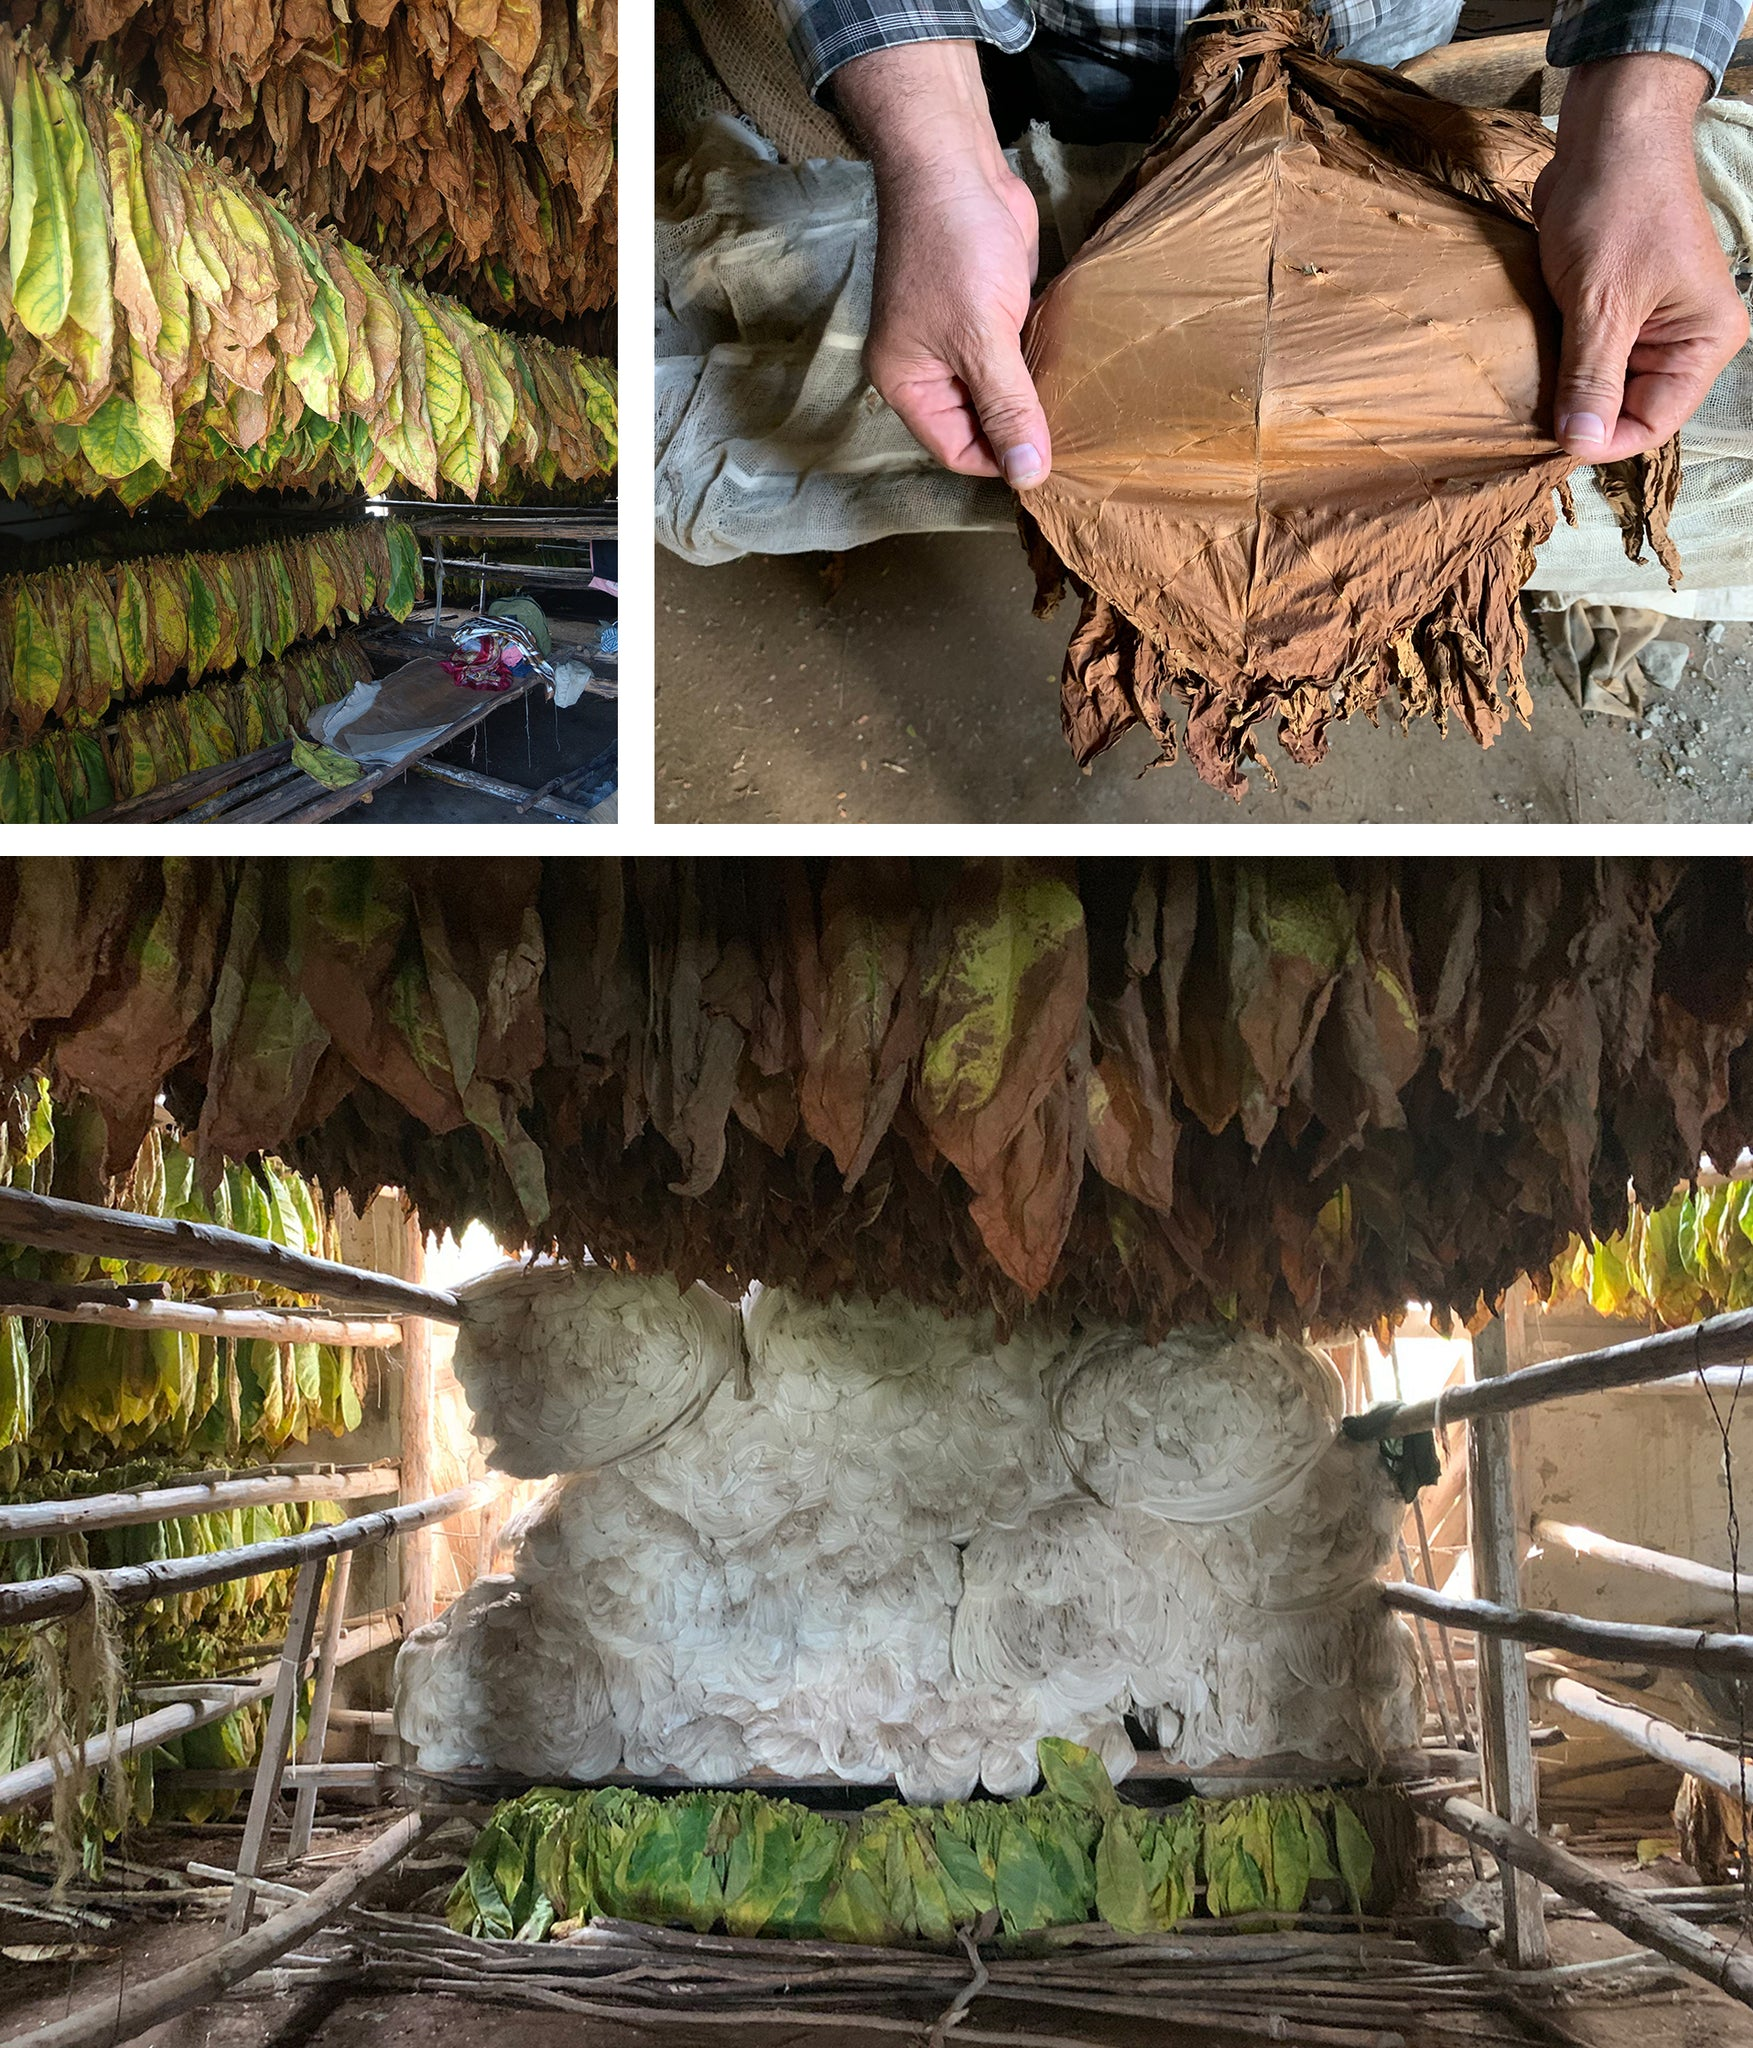 Tobacco leaves hund to dry inside cabana completely dried tobacco leaf ready to move to manufacturing